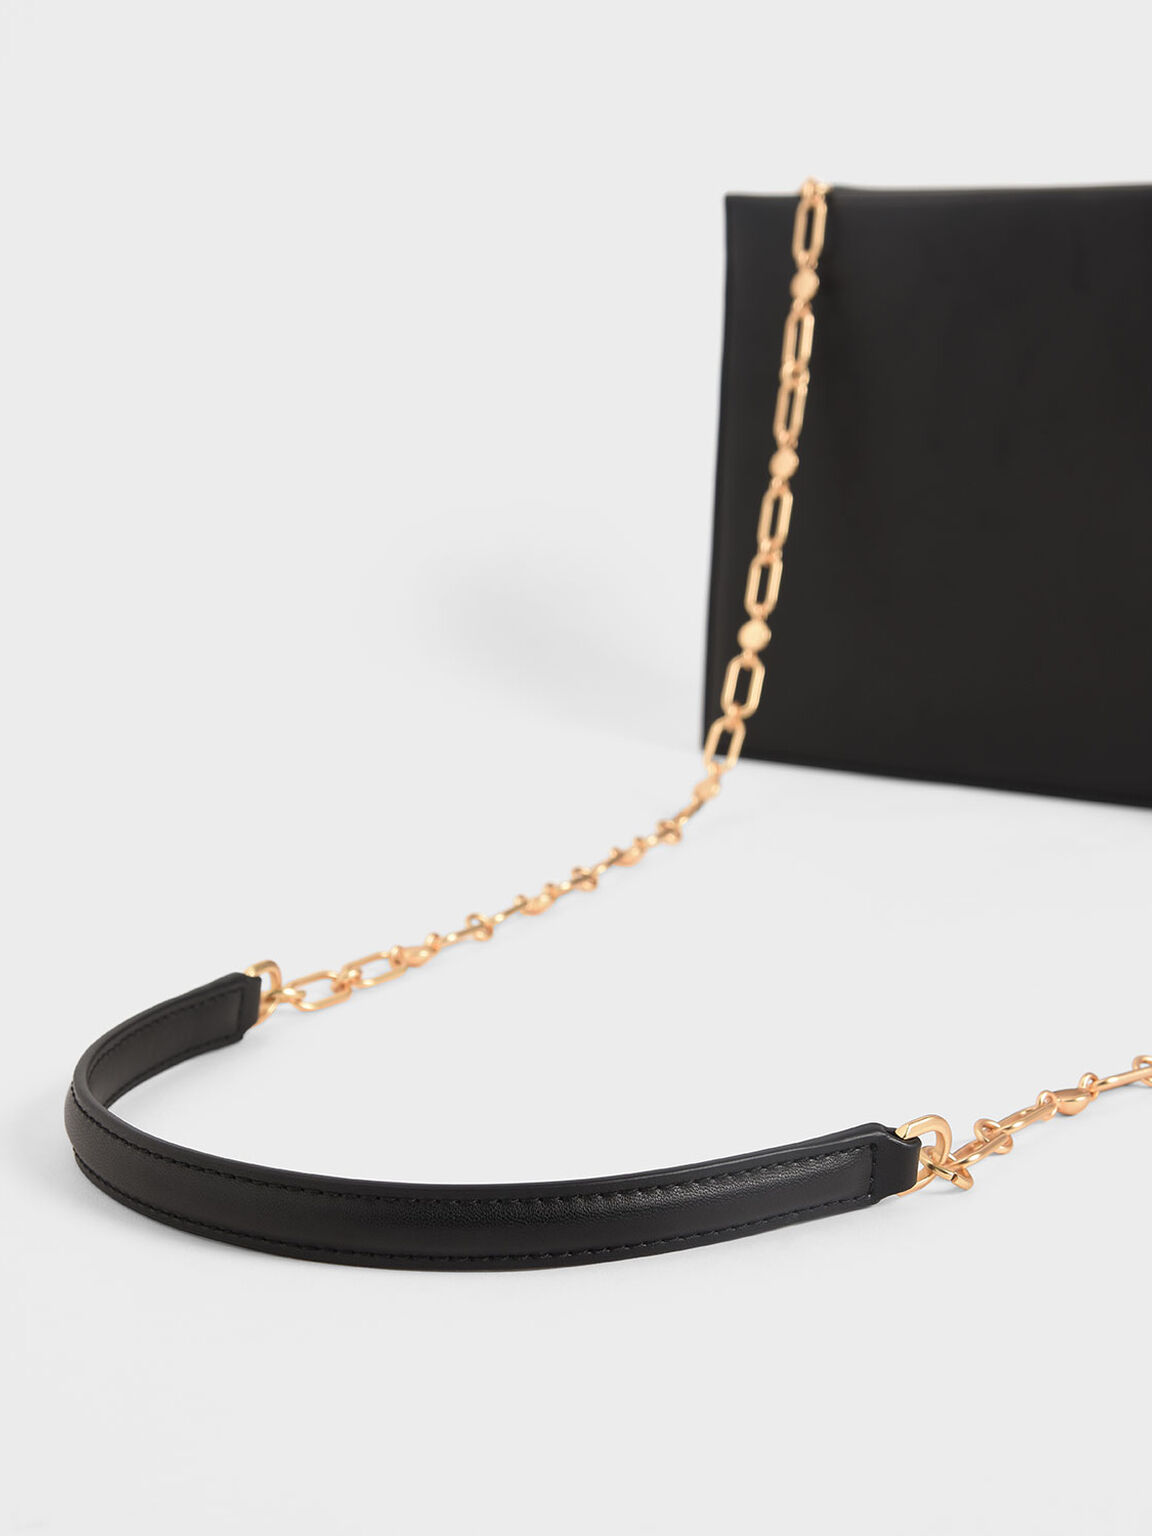 Leather Chain Strap Crossbody Bag, Black, hi-res